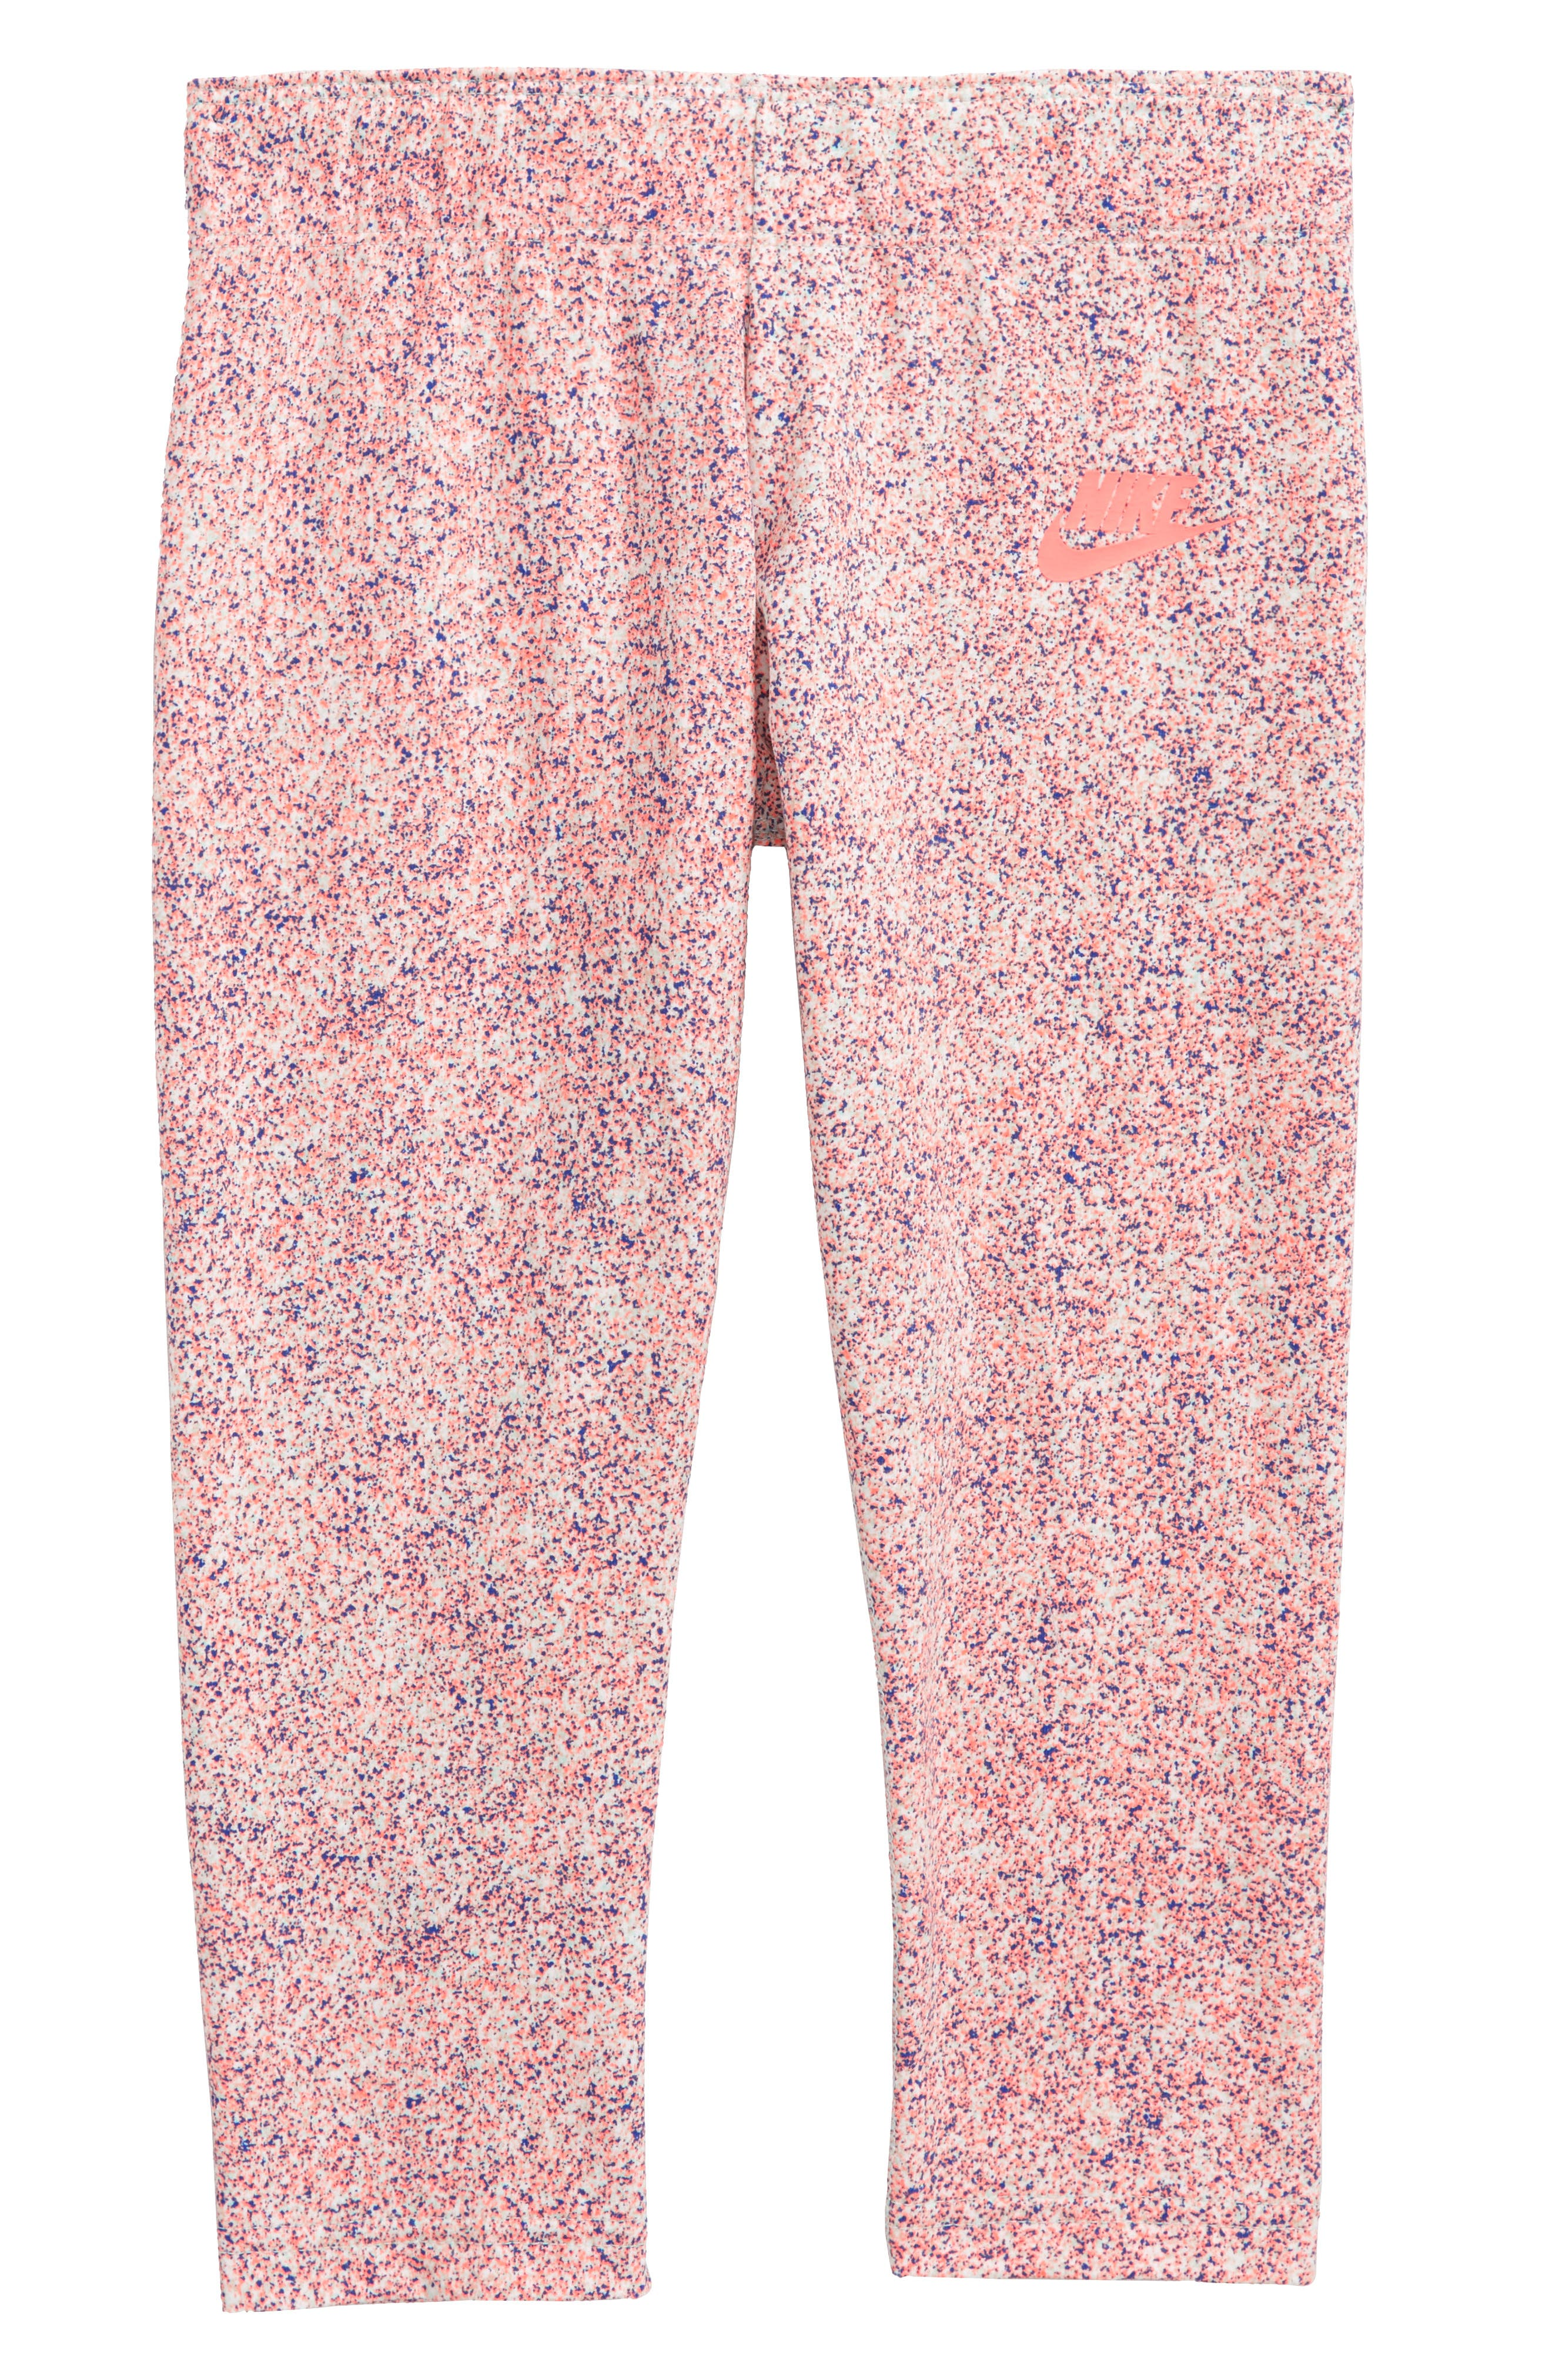 Nike Sportswear AOP Crop Leggings (Big Girls)